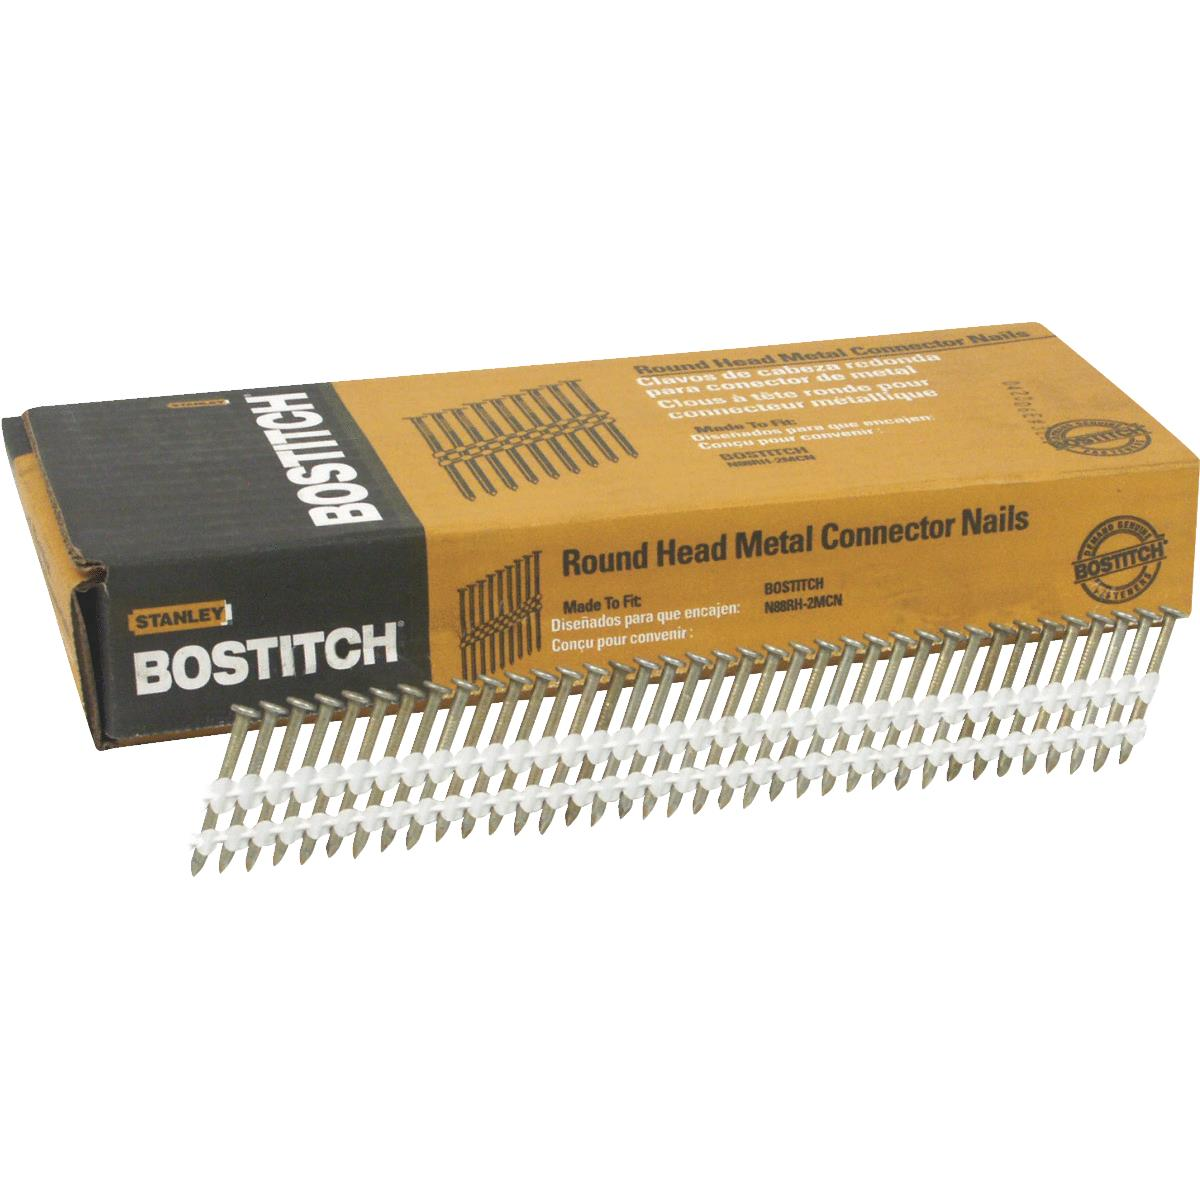 Bostitch Metal Connector Nail